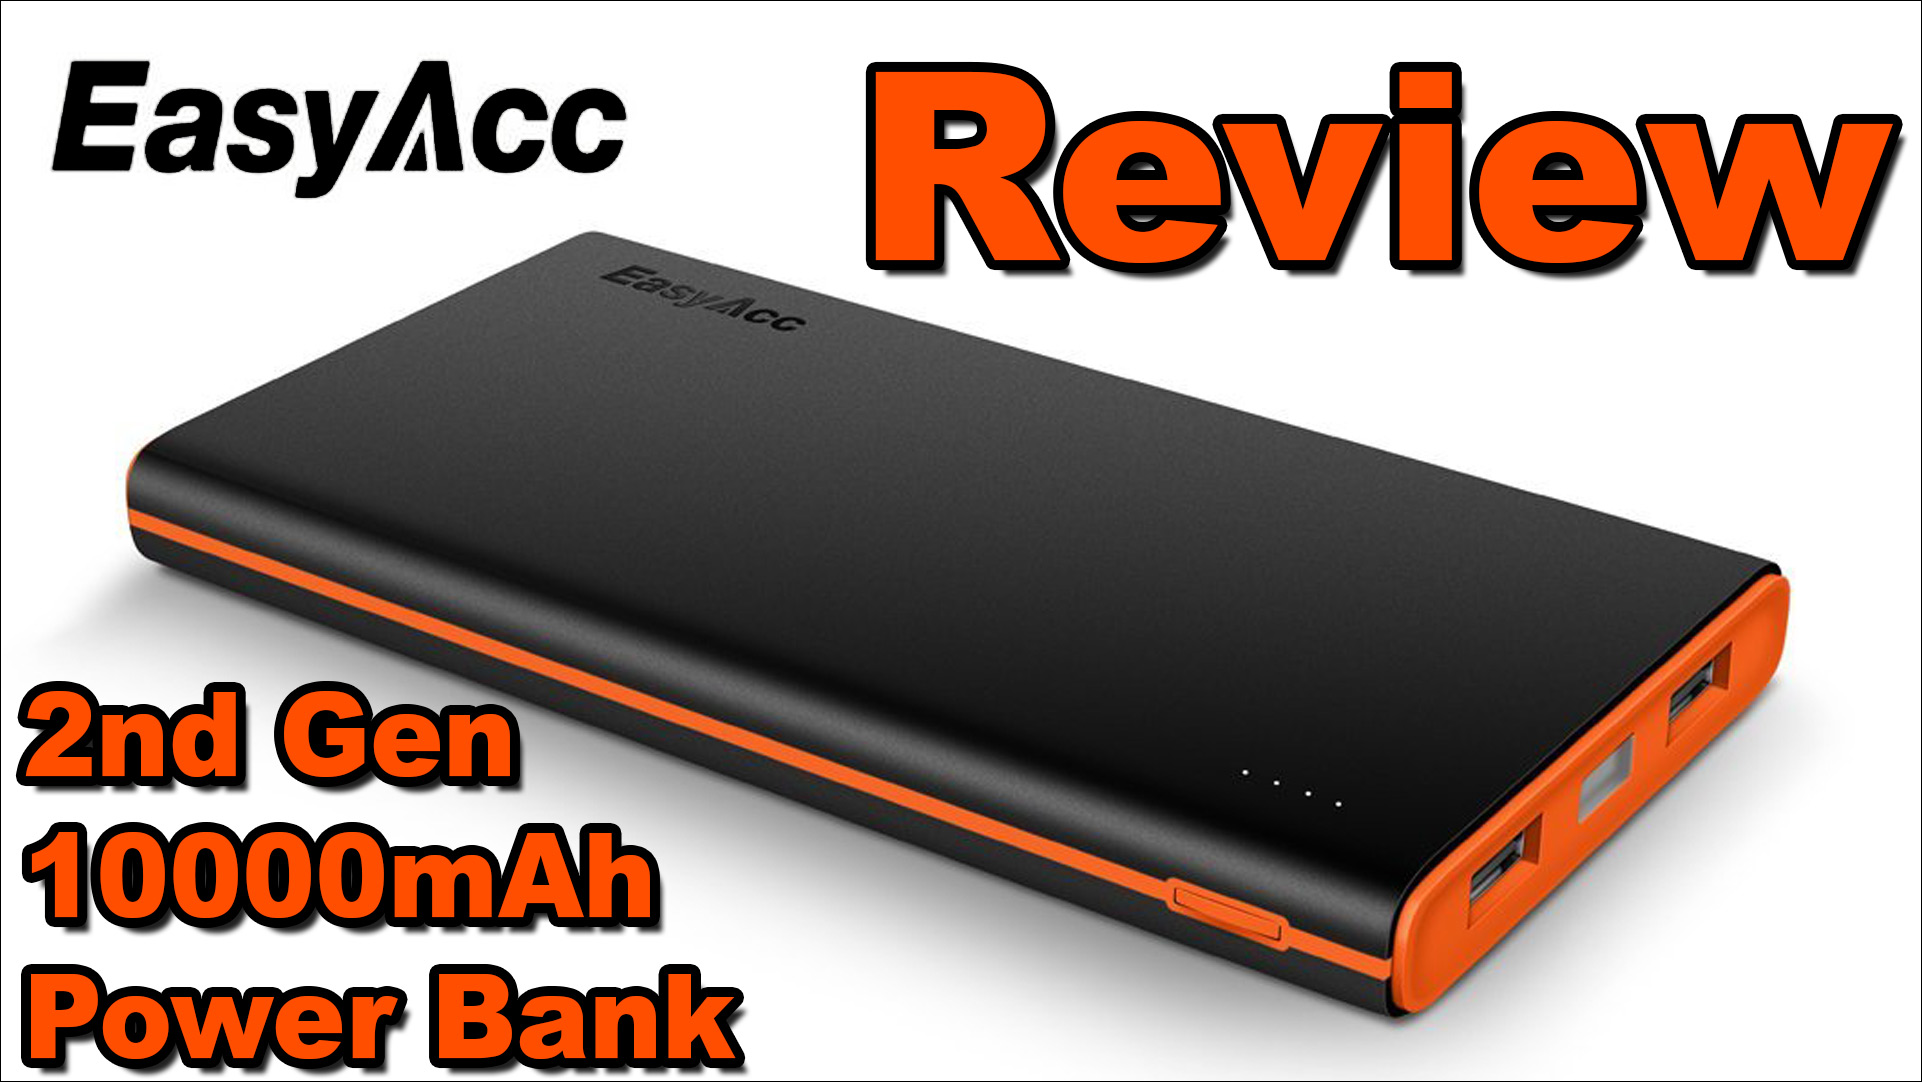 review easyacc 2nd gen 10000mah power bank the makers workbench. Black Bedroom Furniture Sets. Home Design Ideas